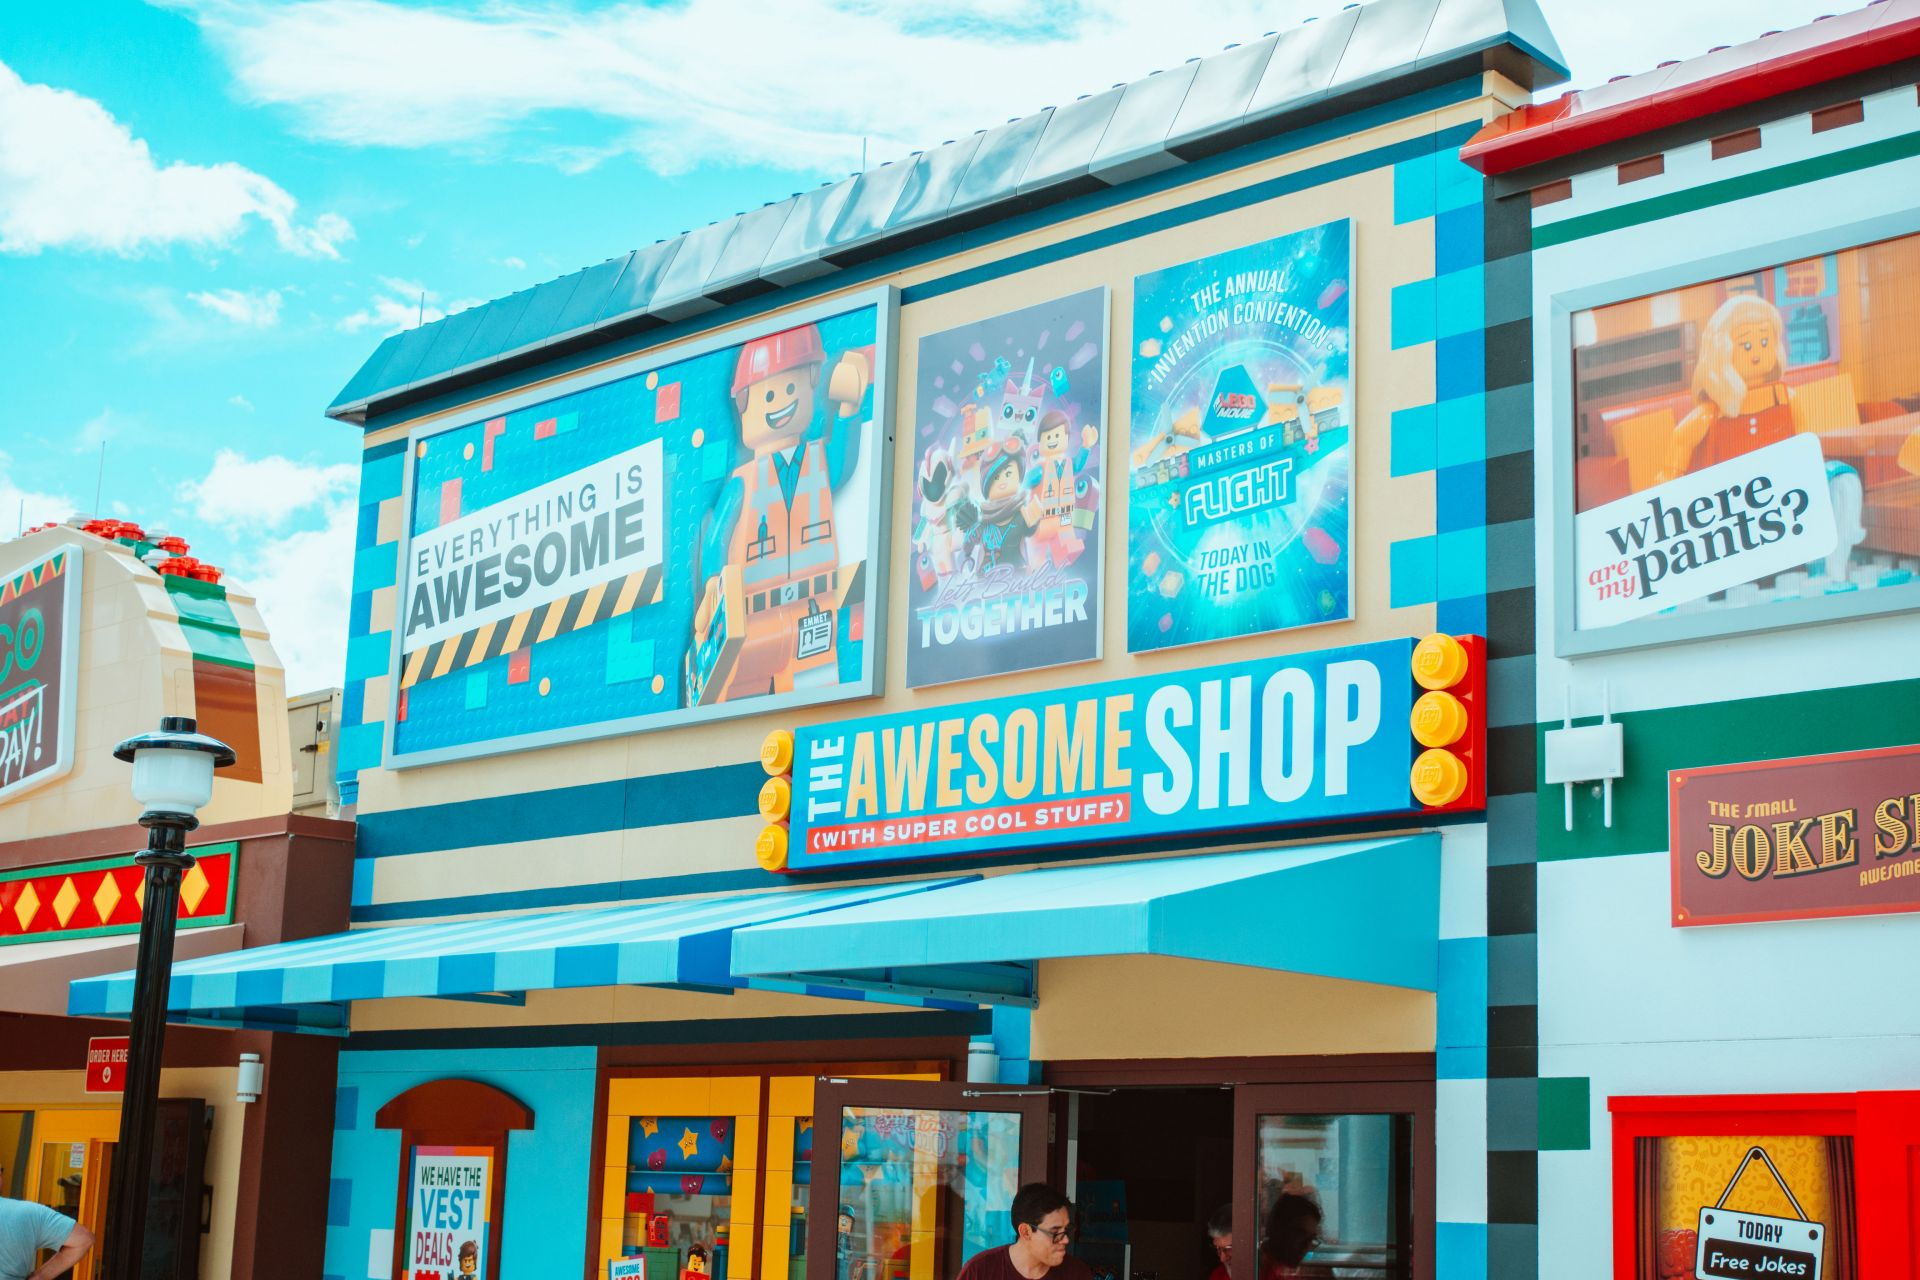 Awesome Shop in Legoland